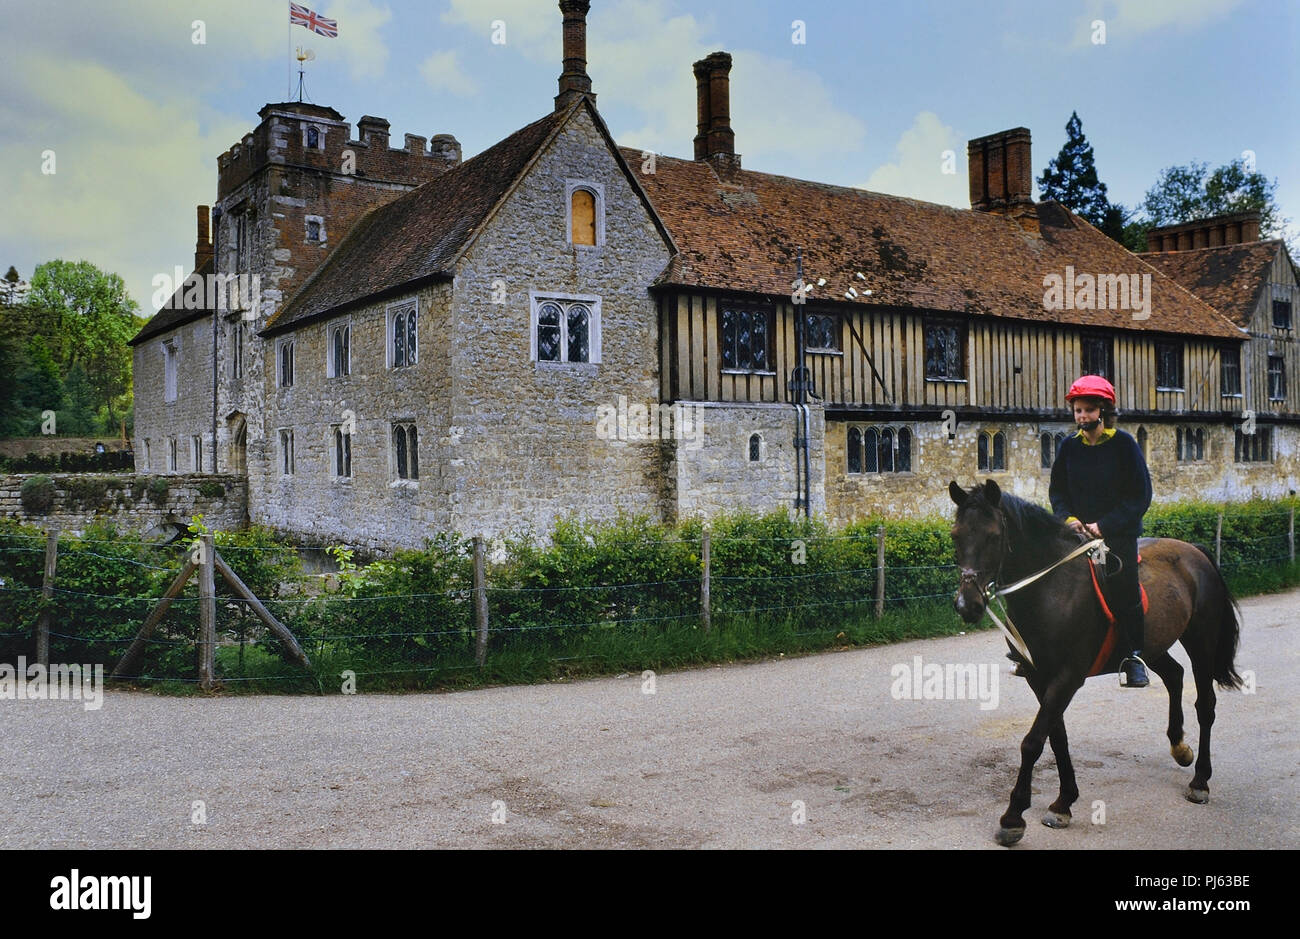 Ightham Mote, Kent, England, UK Photo Stock